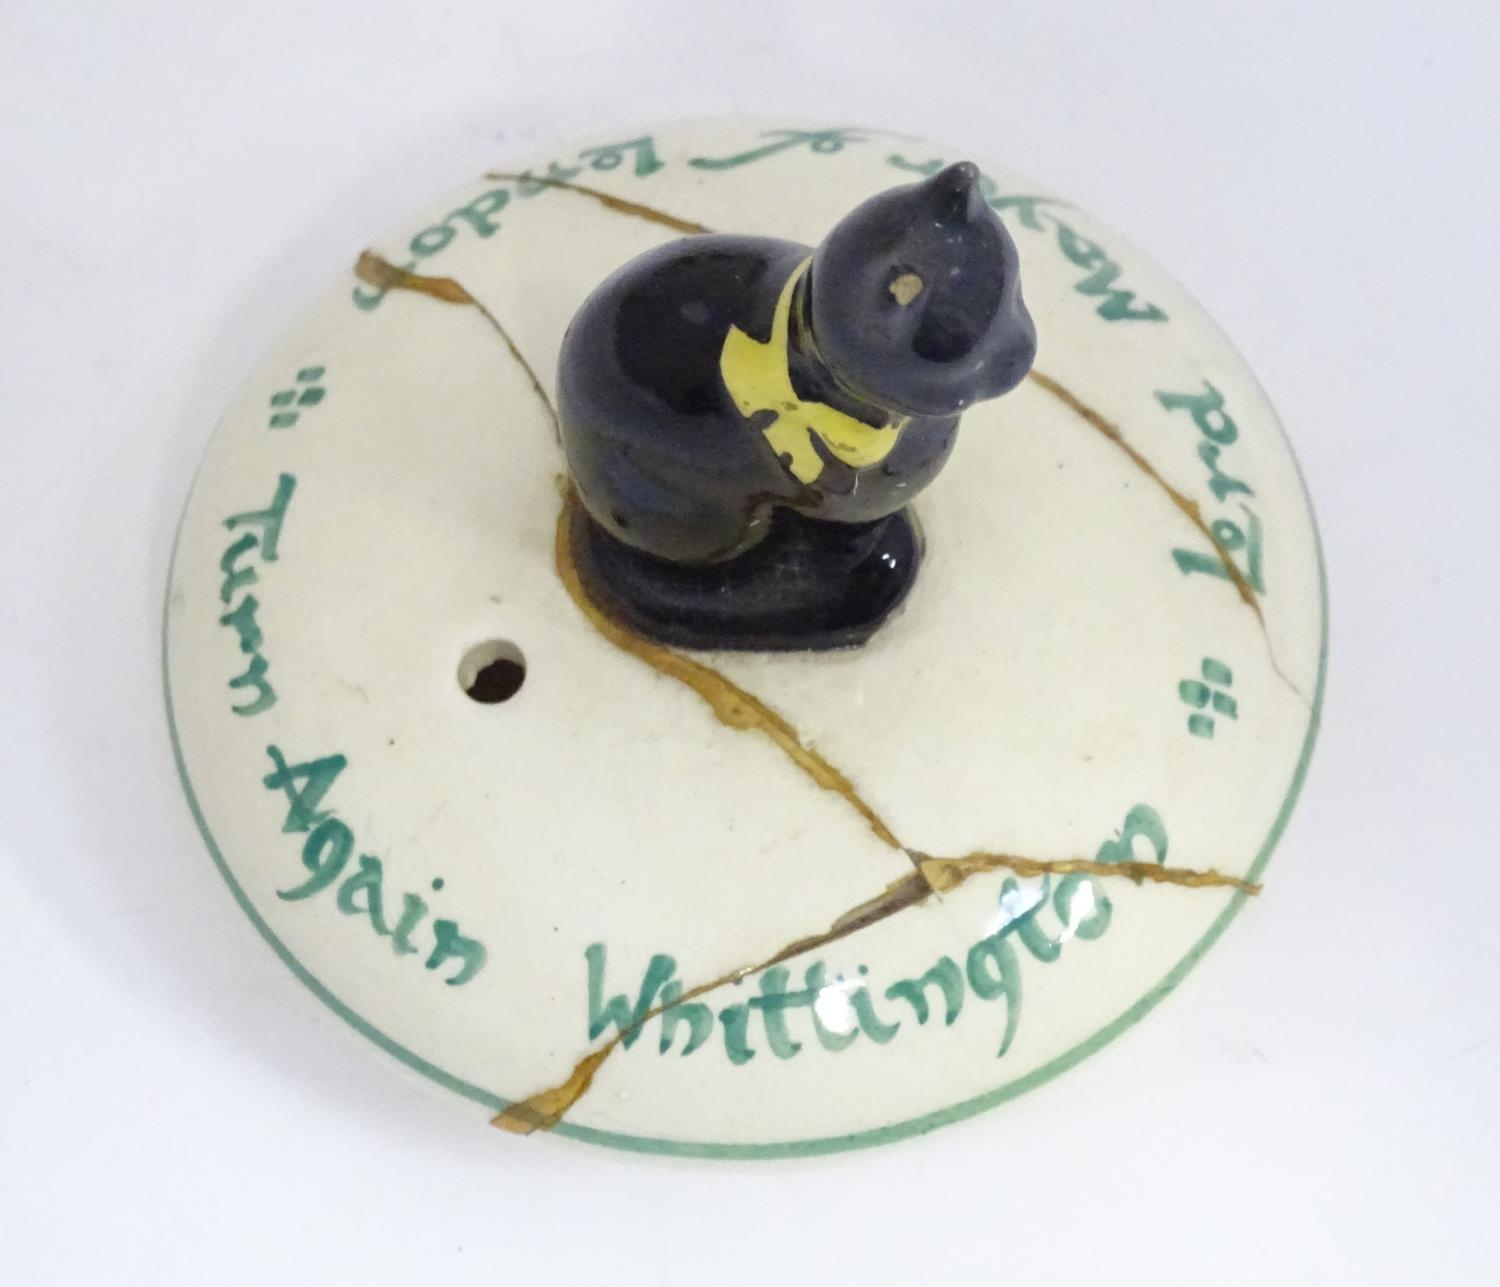 A novelty Dick Whittington teapot Please Note - we do not make reference to the condition of lots - Image 6 of 6